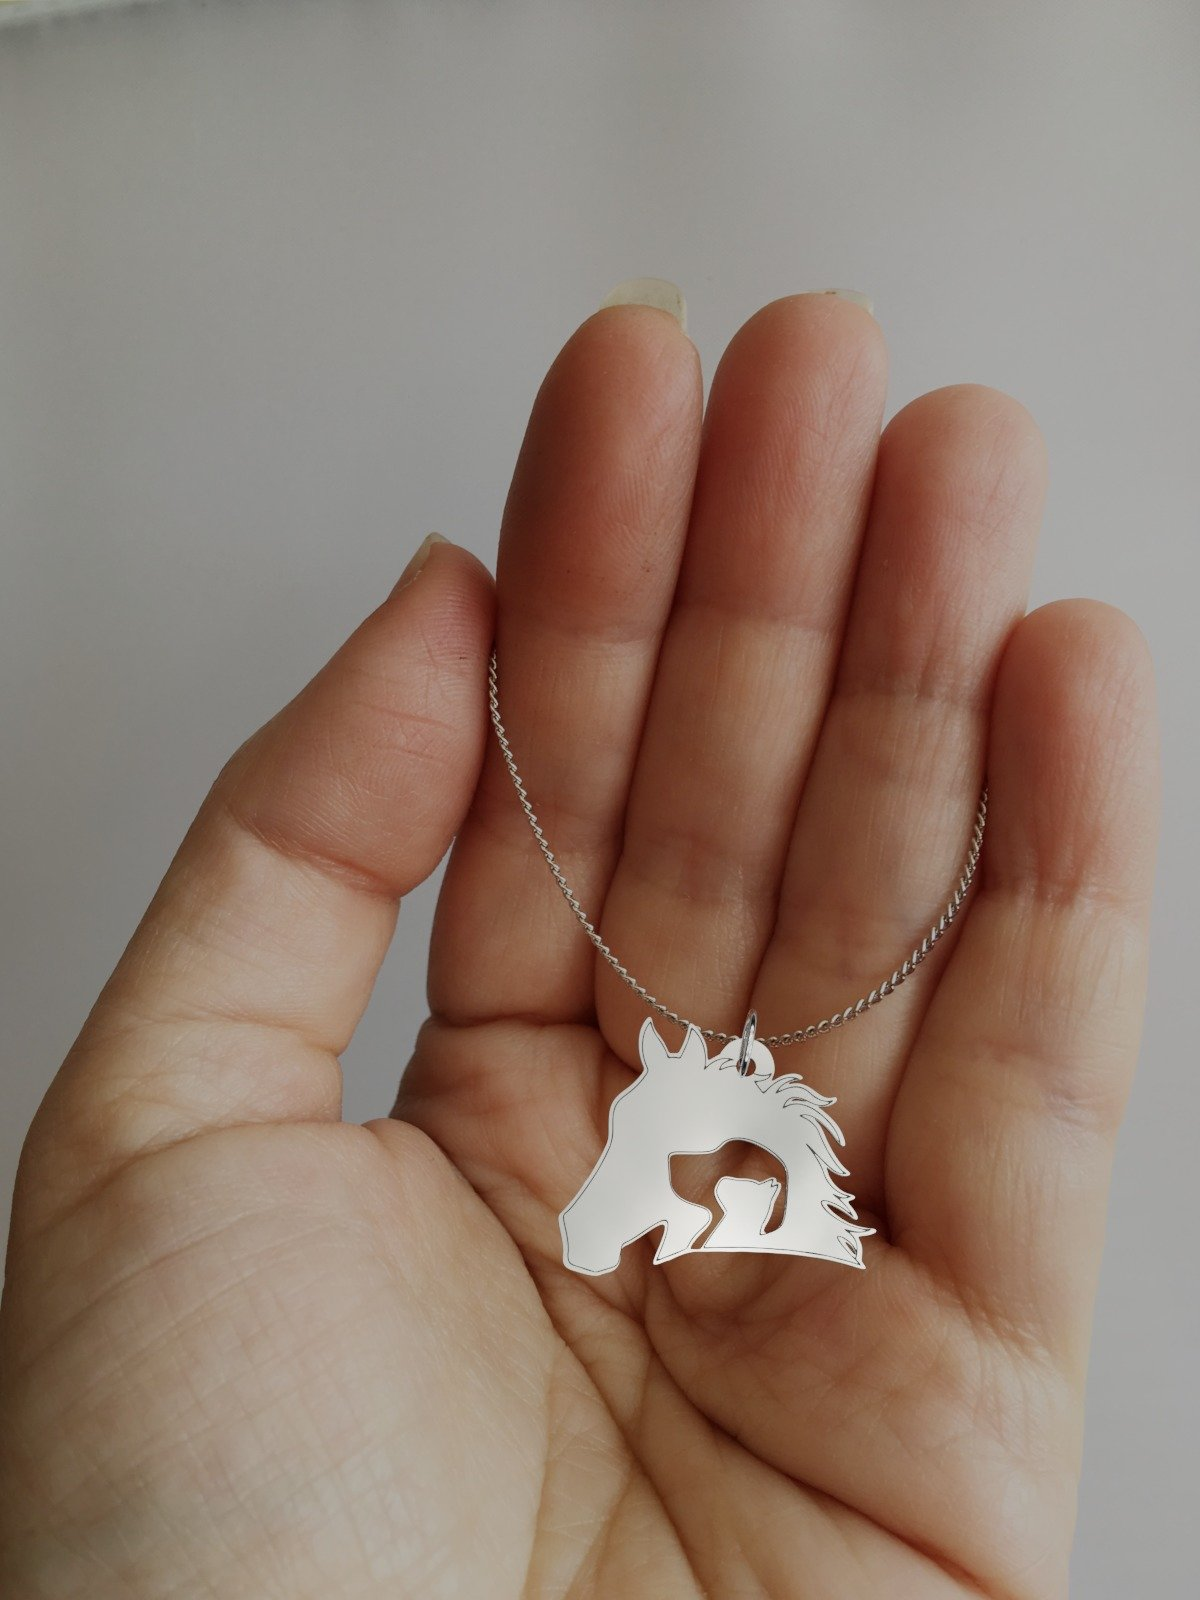 Horse, Dog, Cat Inception Silhouette Silver Necklace-Silver Necklace-I love Veterinary